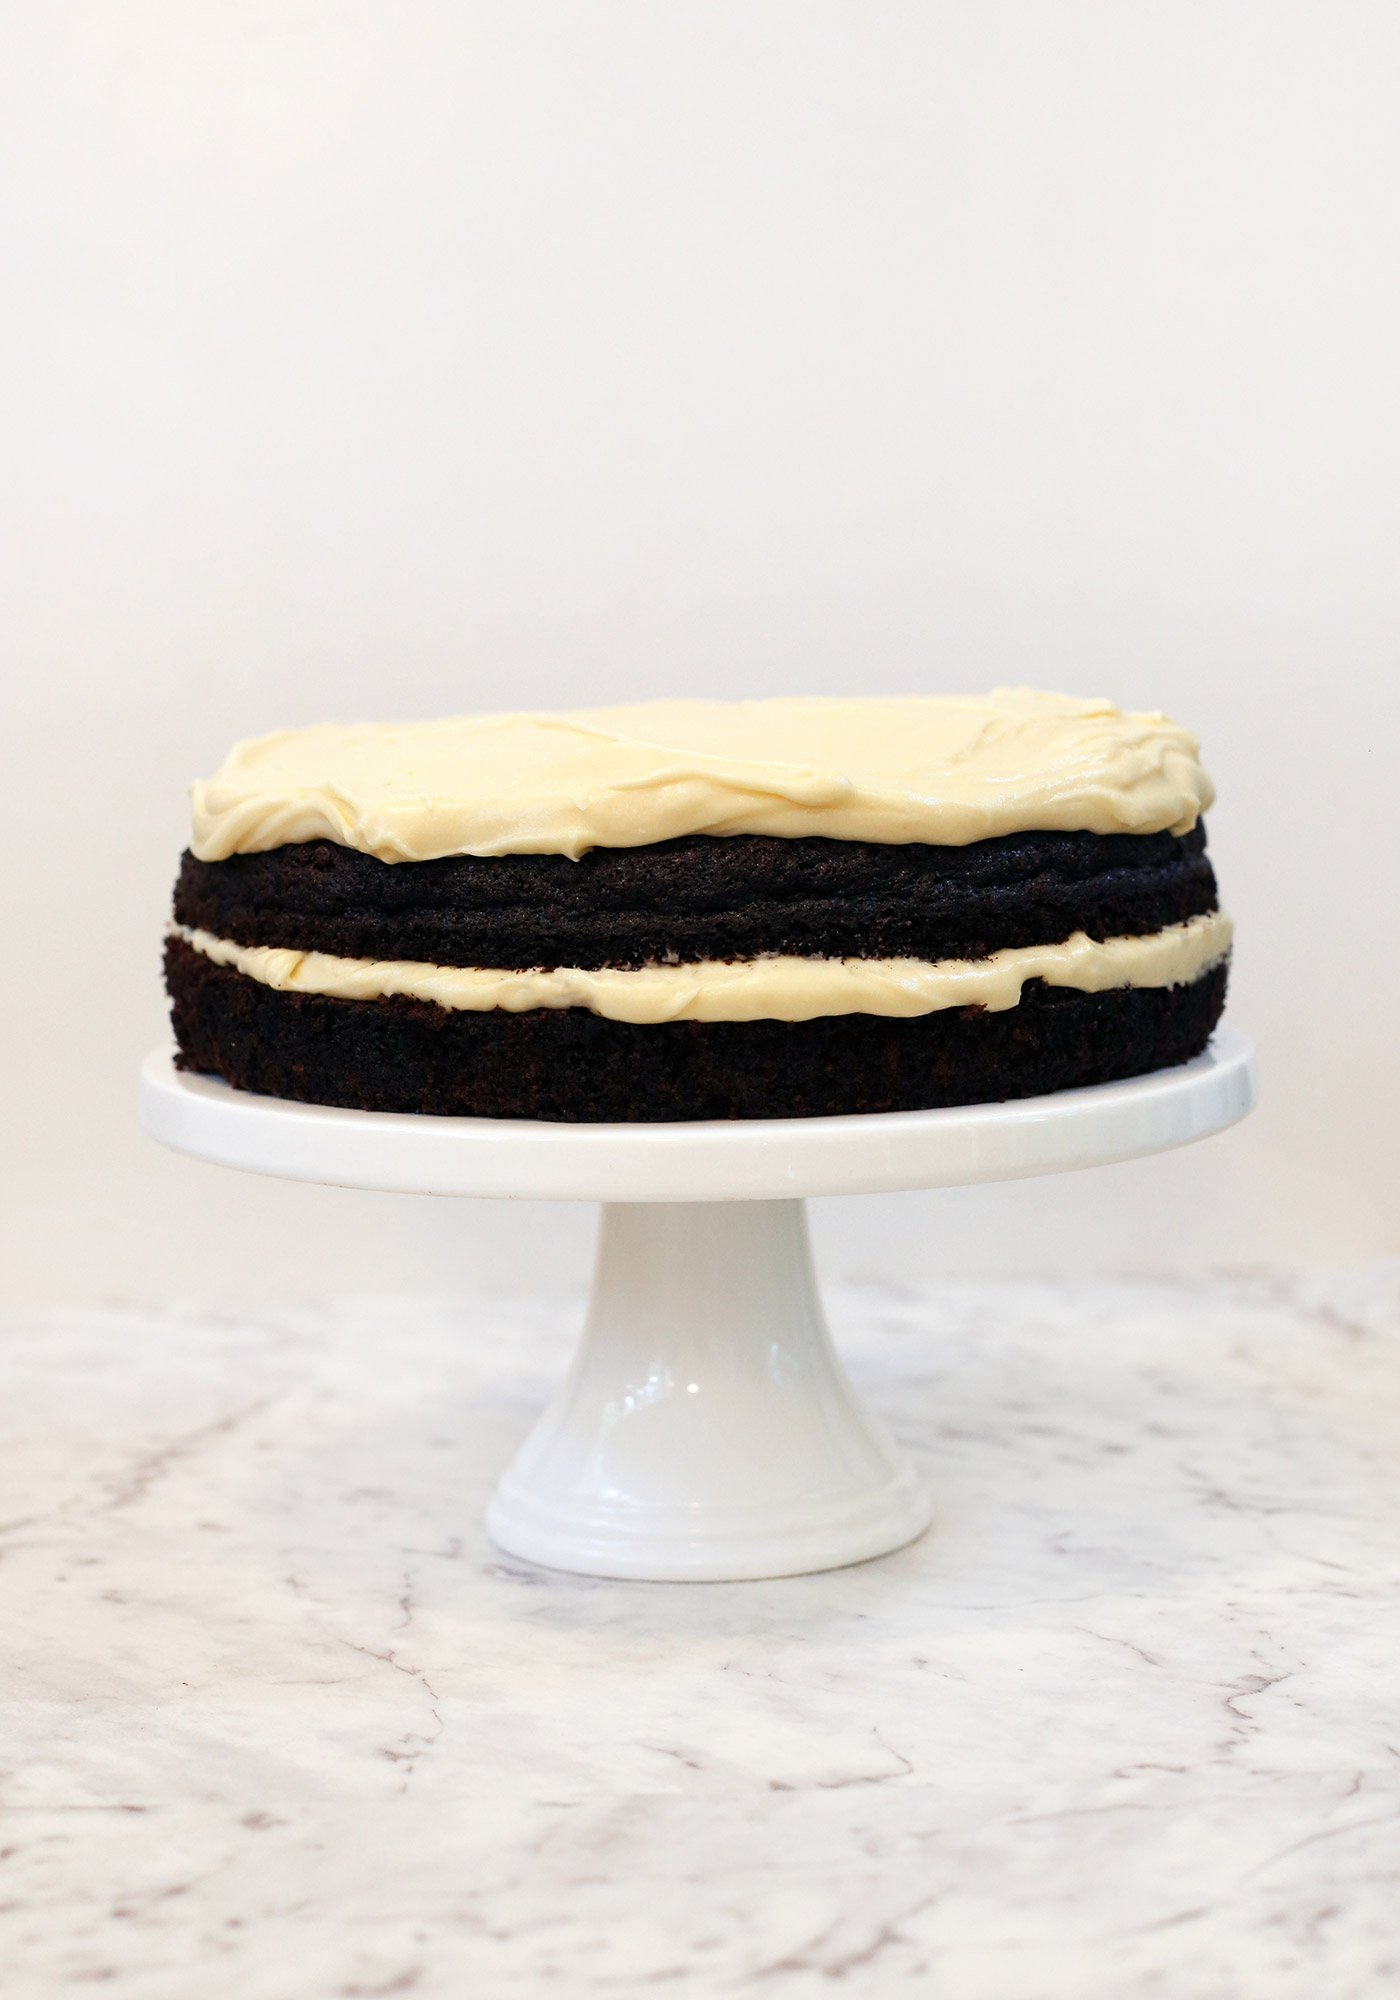 Guiness Layer Cake With Baileys Frosting